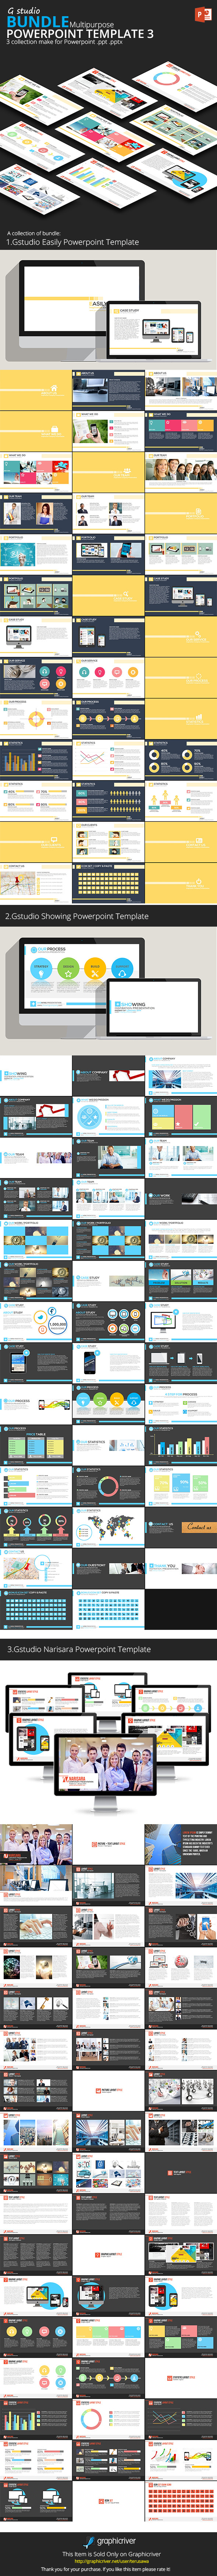 Gstudio Powerpoint Bundle 3 - Business PowerPoint Templates